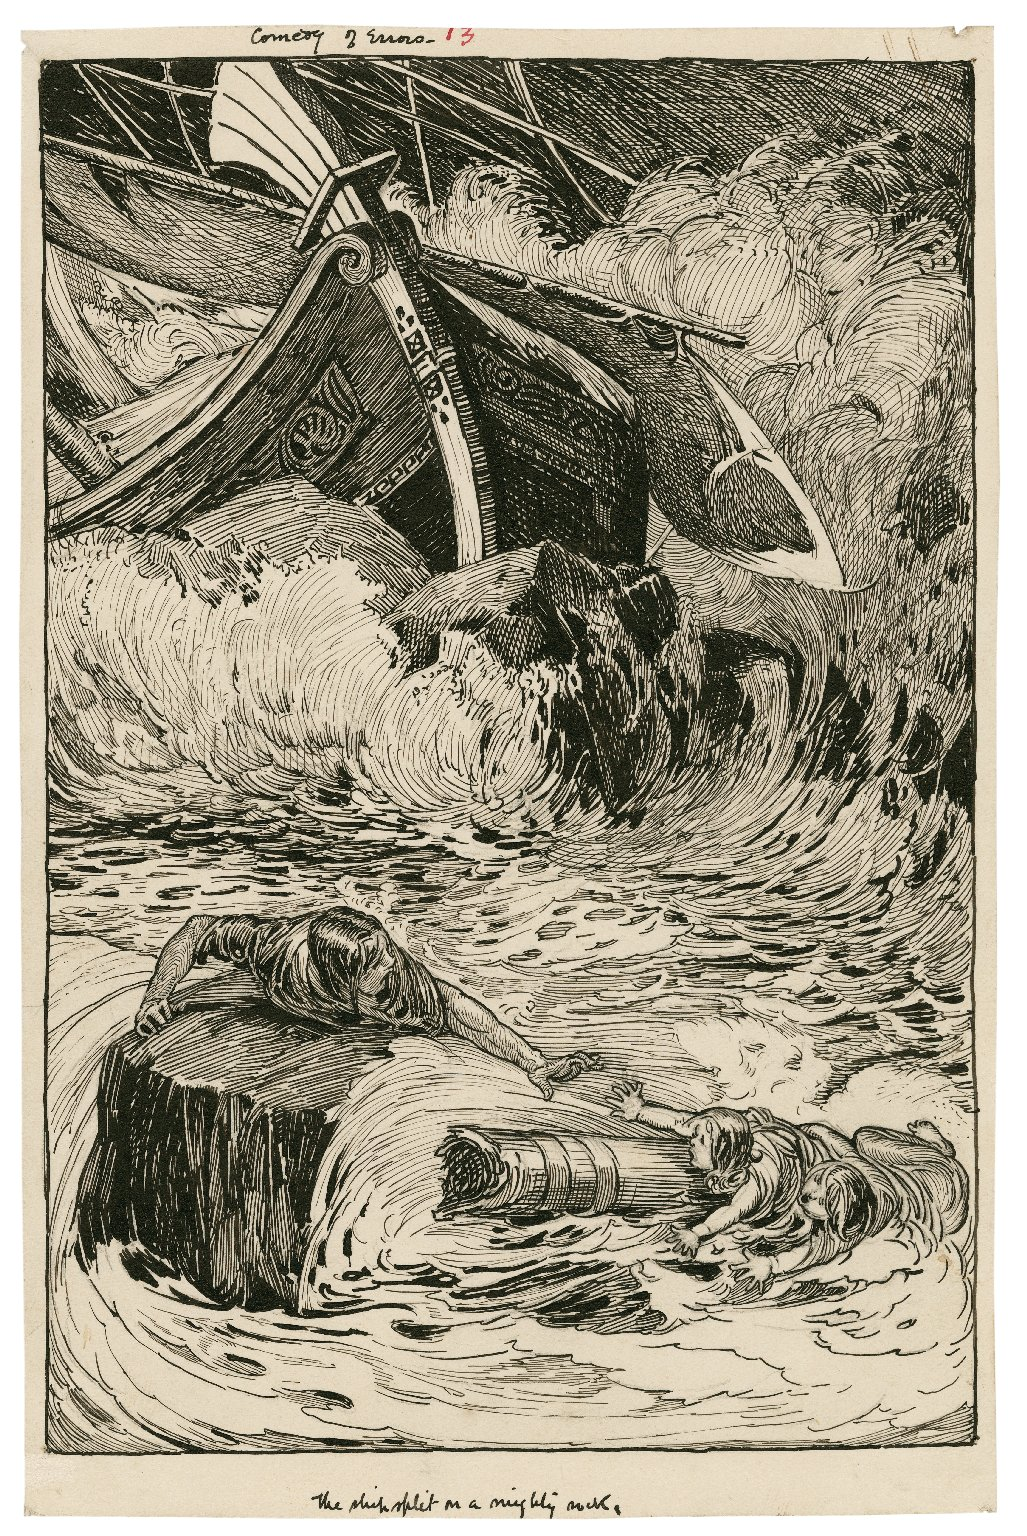 Comedy of Errors. The ship split on a mighty rock [graphic] / [Louis Rhead].